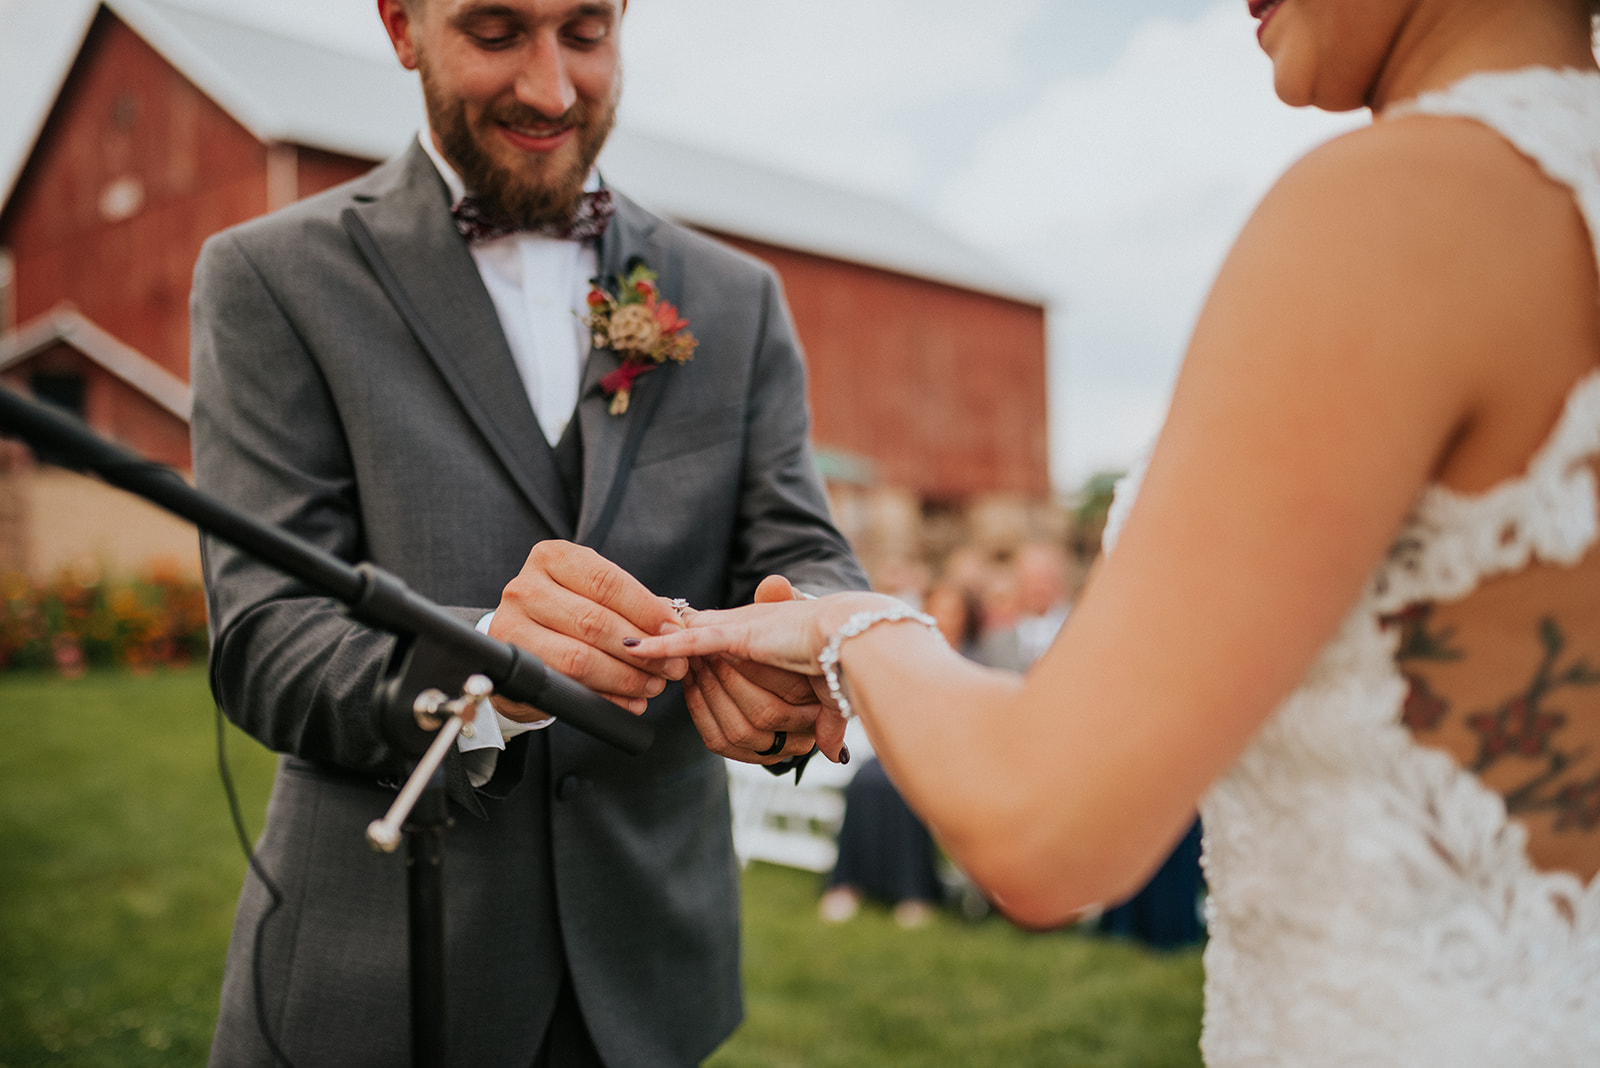 overthevineswisconsinwedding_0678.jpg